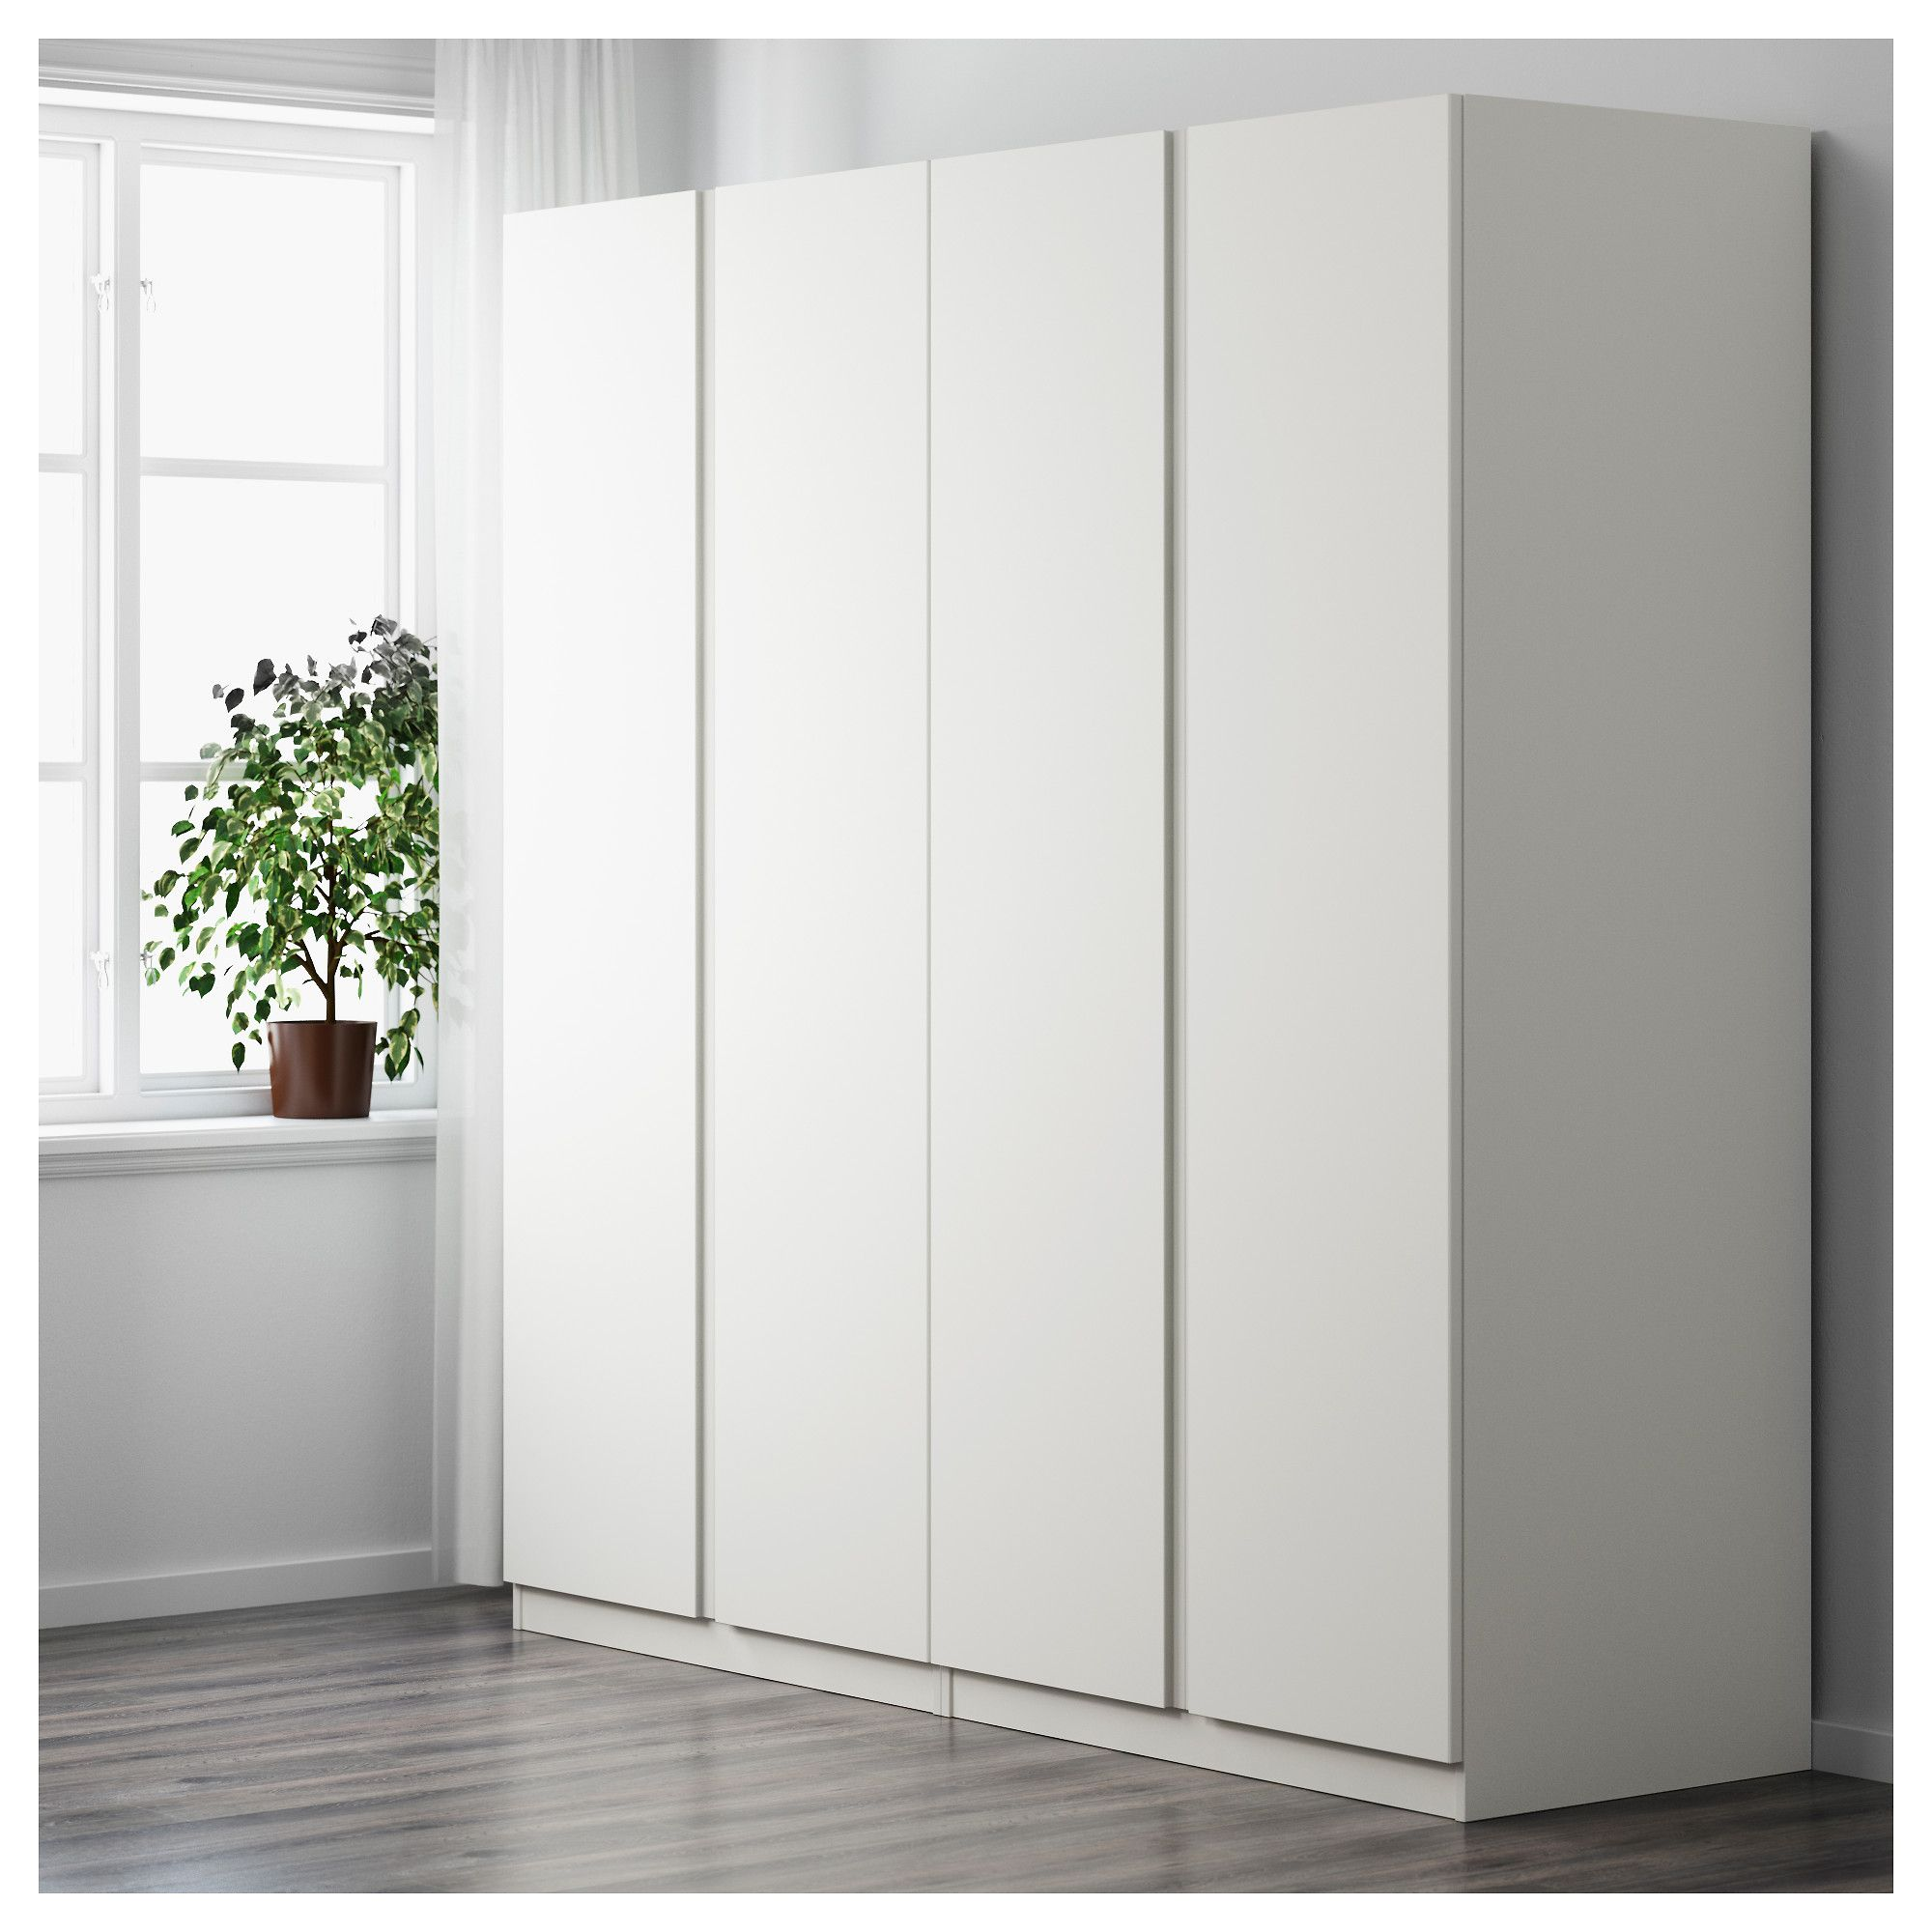 Ikea Pax 3d Image Result For Images Of Vikanes Doors In A Bedroom